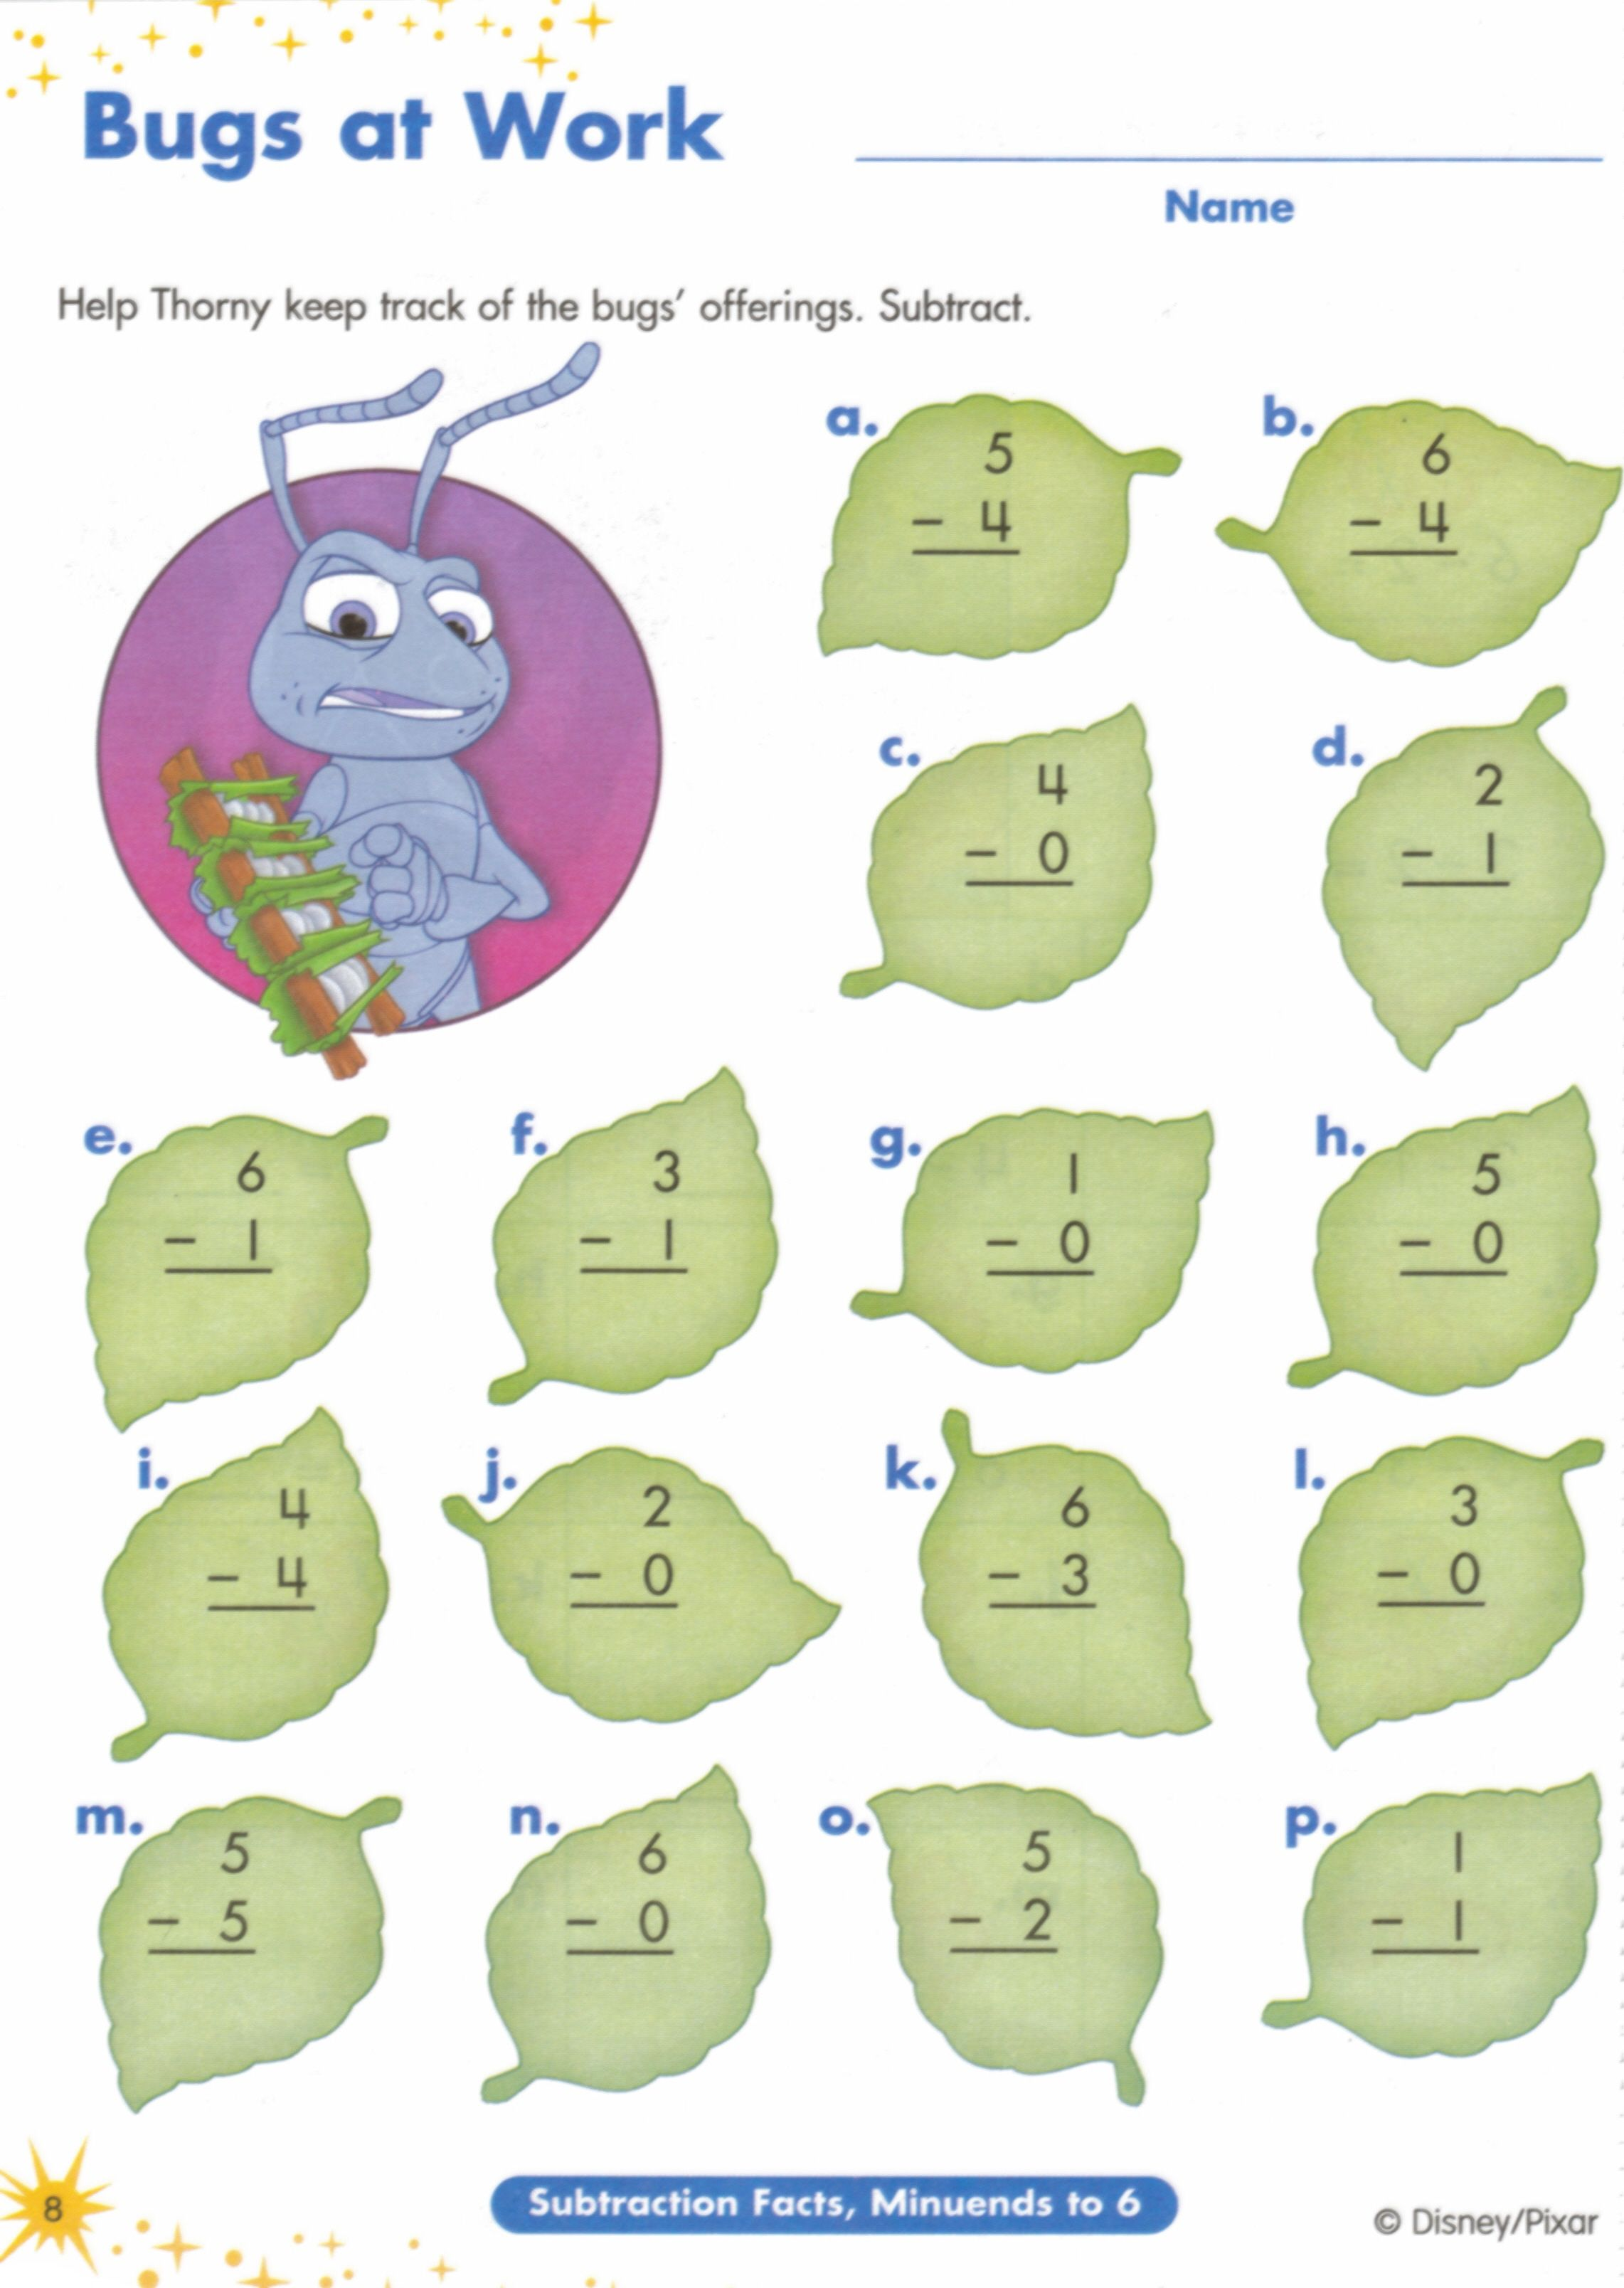 Weirdmailus  Remarkable  Images About Worksheets On Pinterest  Fun Facts For Kids  With Inspiring  Images About Worksheets On Pinterest  Fun Facts For Kids Earth Day Worksheets And Jungles With Astonishing English Grammar Sentence Structure Worksheets Also Two Column Proof Worksheets In Addition Free Worksheets For Multiplication And General Knowledge Worksheets As Well As Shapes Worksheet For Preschool Additionally Worksheets For Algebra  From Pinterestcom With Weirdmailus  Inspiring  Images About Worksheets On Pinterest  Fun Facts For Kids  With Astonishing  Images About Worksheets On Pinterest  Fun Facts For Kids Earth Day Worksheets And Jungles And Remarkable English Grammar Sentence Structure Worksheets Also Two Column Proof Worksheets In Addition Free Worksheets For Multiplication From Pinterestcom